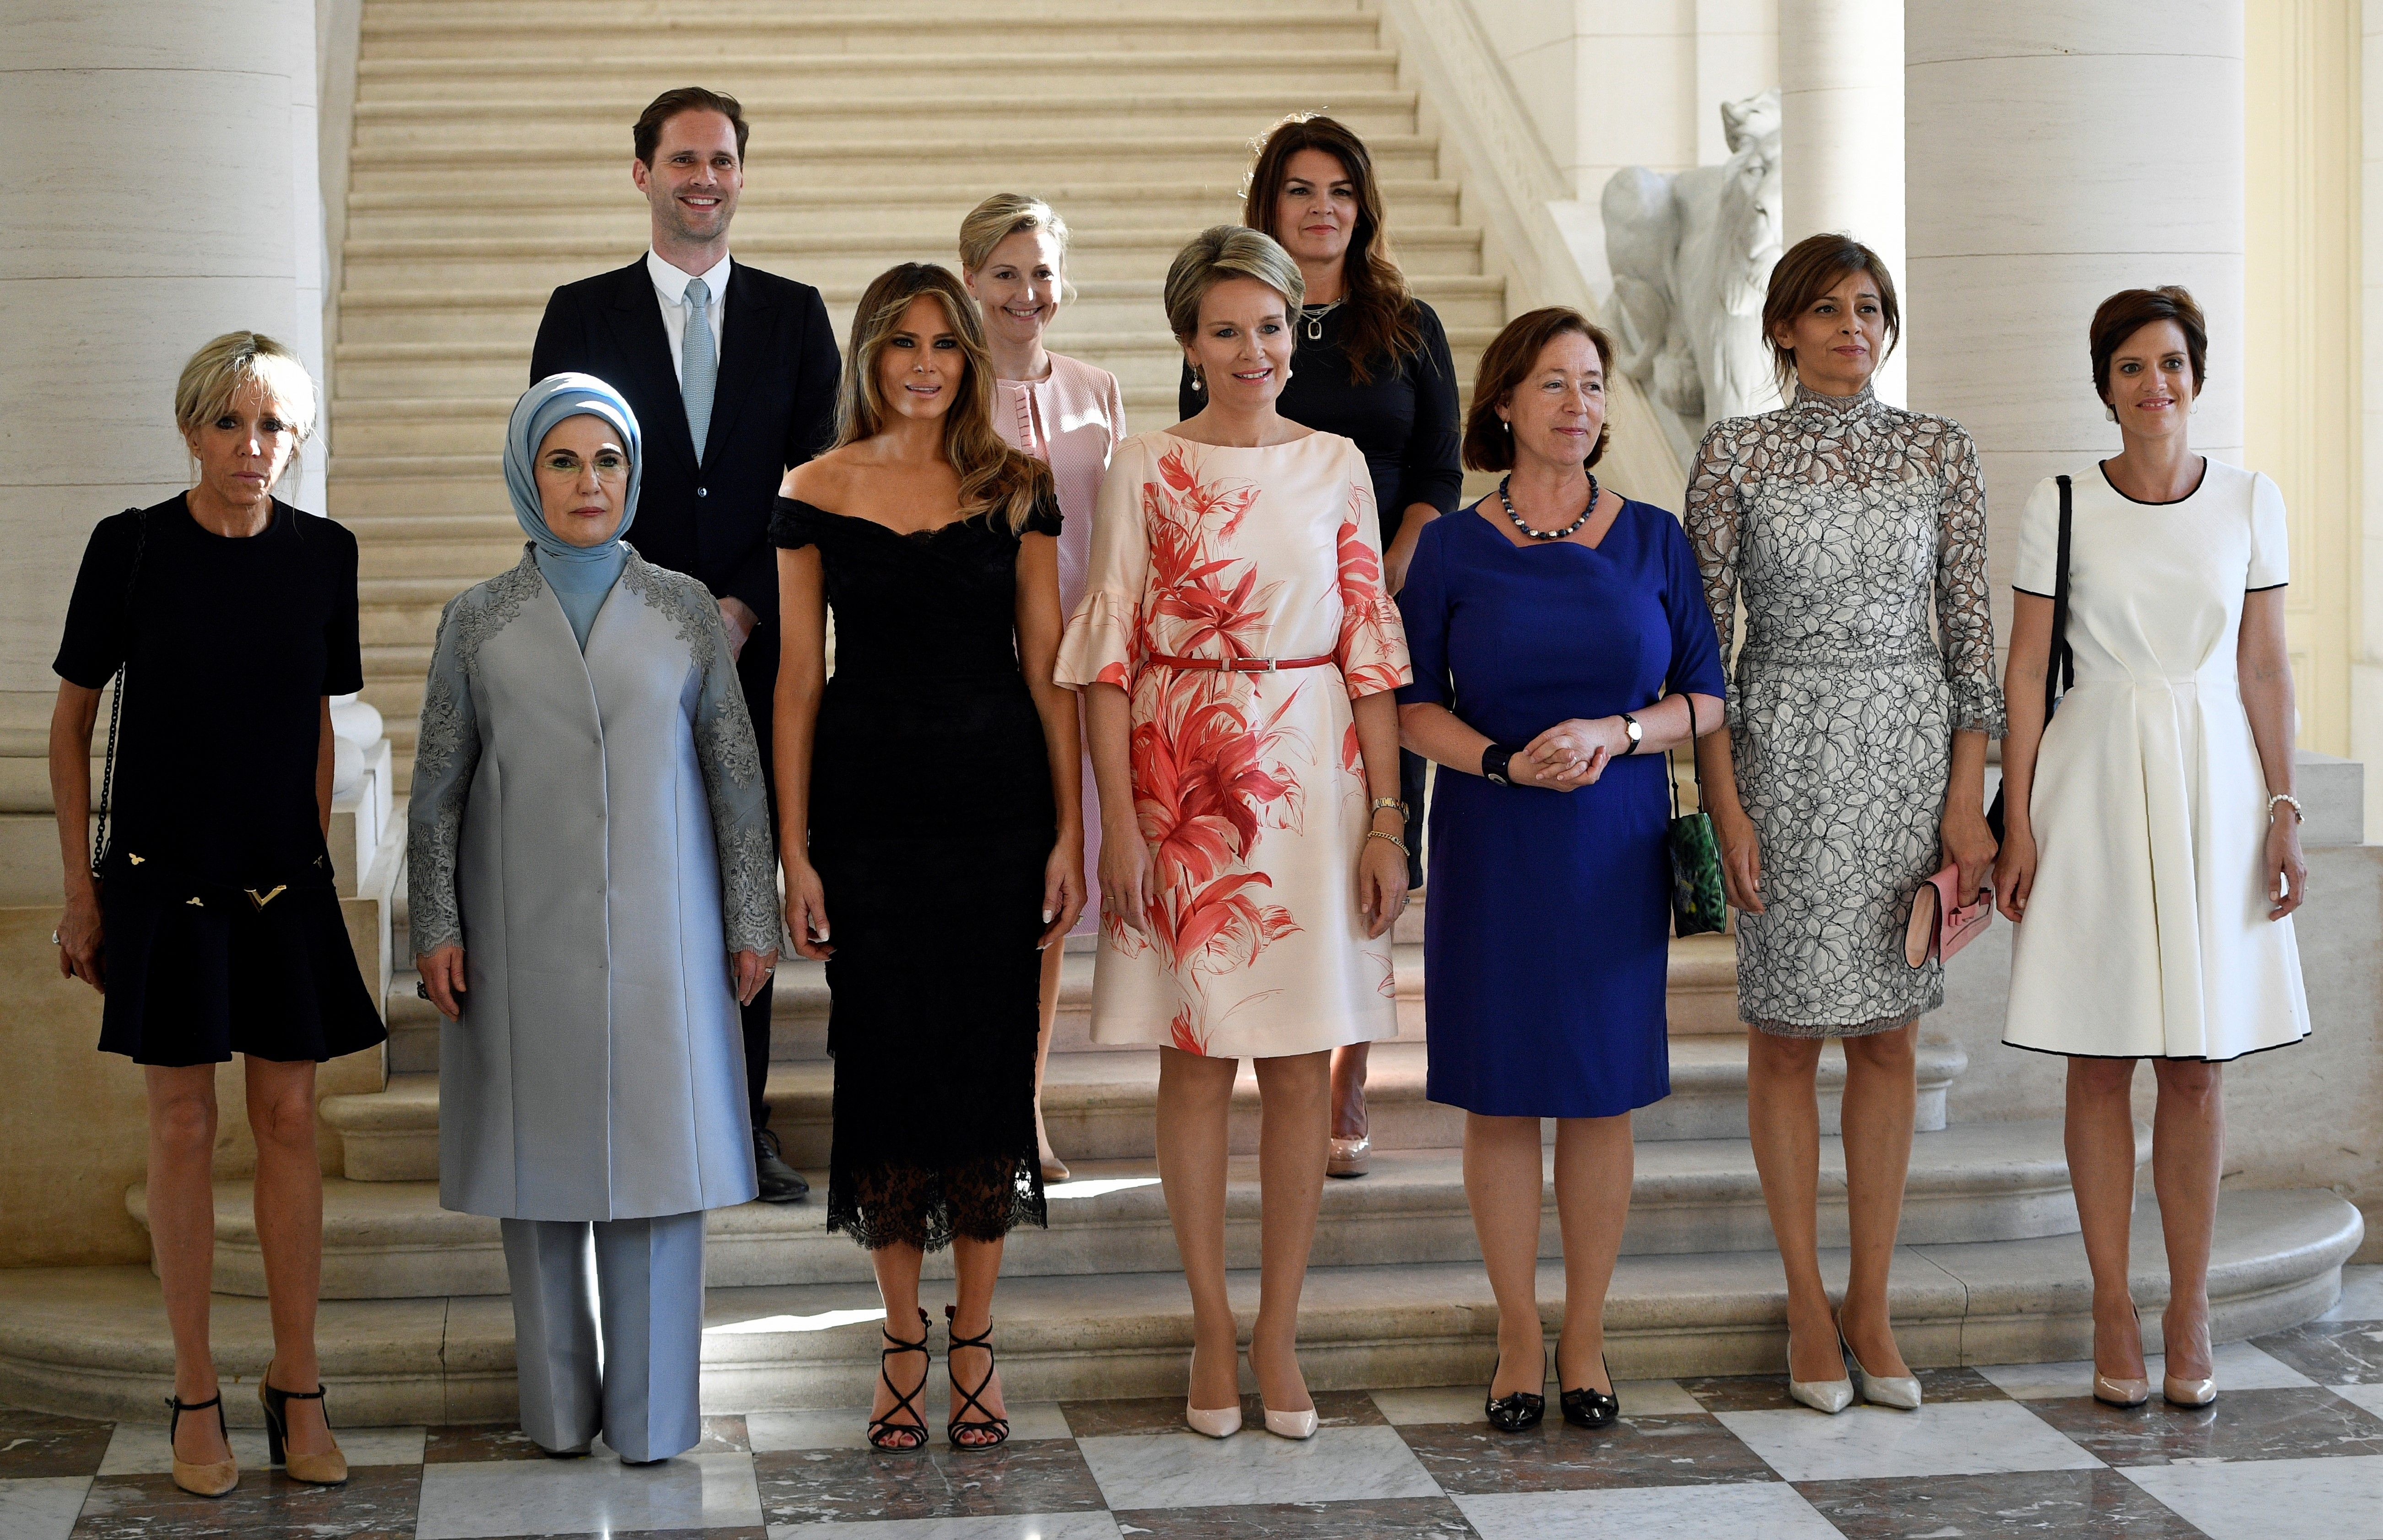 (Front row LtoR) Brigitte Macron, wife of French President, Emine Gulbaran Erdogan, wife of Turkey's President, First Lady of the US Melania Trump, Queen Mathilde of Belgium, Stoltenberg's wife Ingrid Schulerud, partner of Bulgaria's President Desislava Radeva, partner of Charles Michel Amelie Derbaudrenghien, (back row, LtoR), husband of Luxembourg's prime minister Gauthier Destenay, partner of Slovenia's Prime Minister Mojca Stropnik and wife of Iceland's President Thora Margret Baldvinsdottir pose for a family photo before a diner  at the Royal castle in Laken/Laeken, on May 25, 2017, in Brussels. / AFP PHOTO / BELGA / YORICK JANSENS / Belgium OUT        (Photo credit should read YORICK JANSENS/AFP/Getty Images)